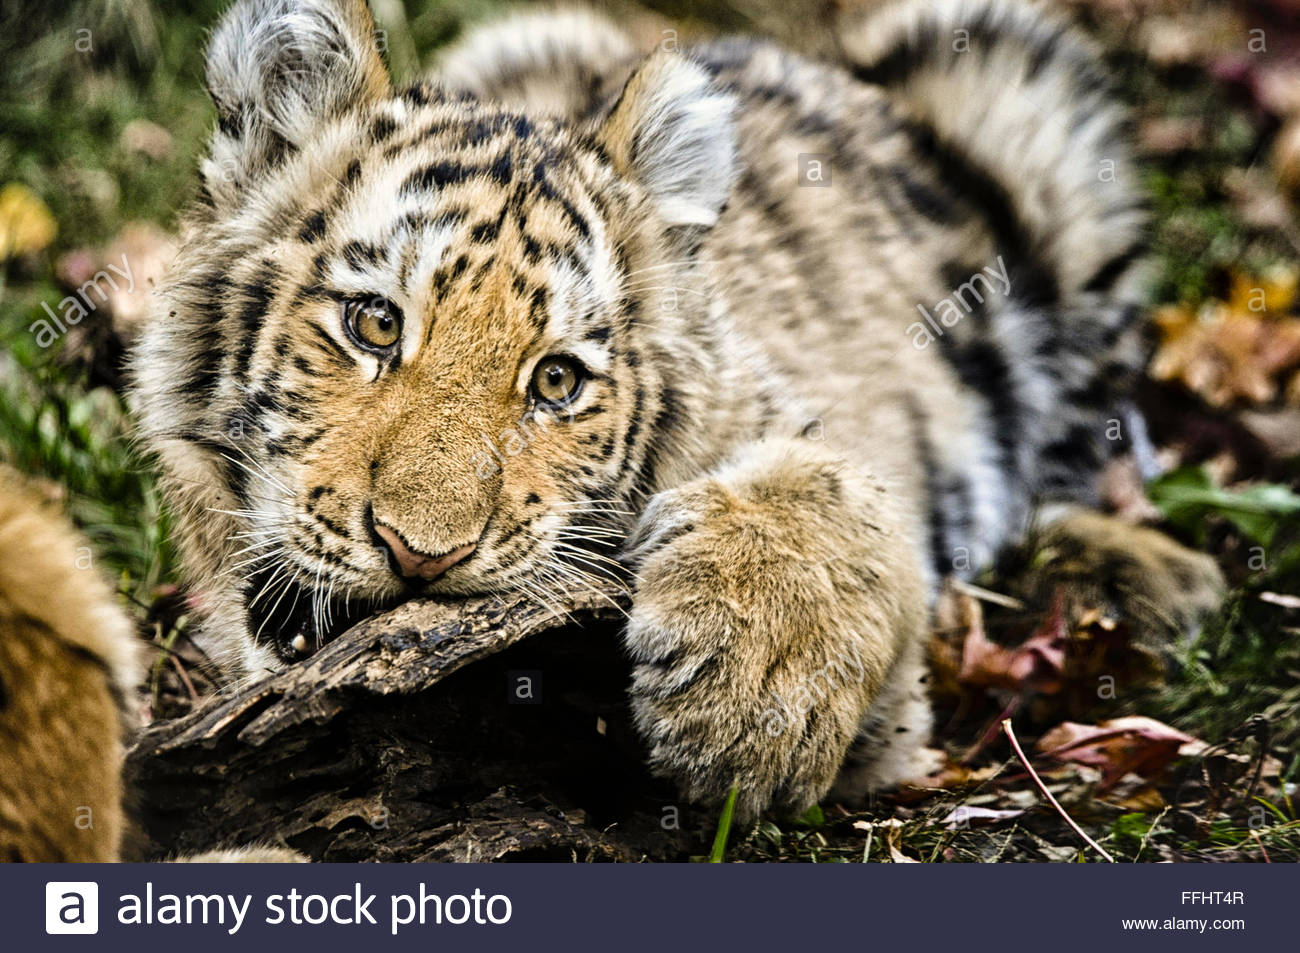 Cinq mois ou d'Amur Siberian Tiger Cub, Panthera tigris altaica, bouche ouverte, mordre, zoo du Bronx, New York Photo Stock